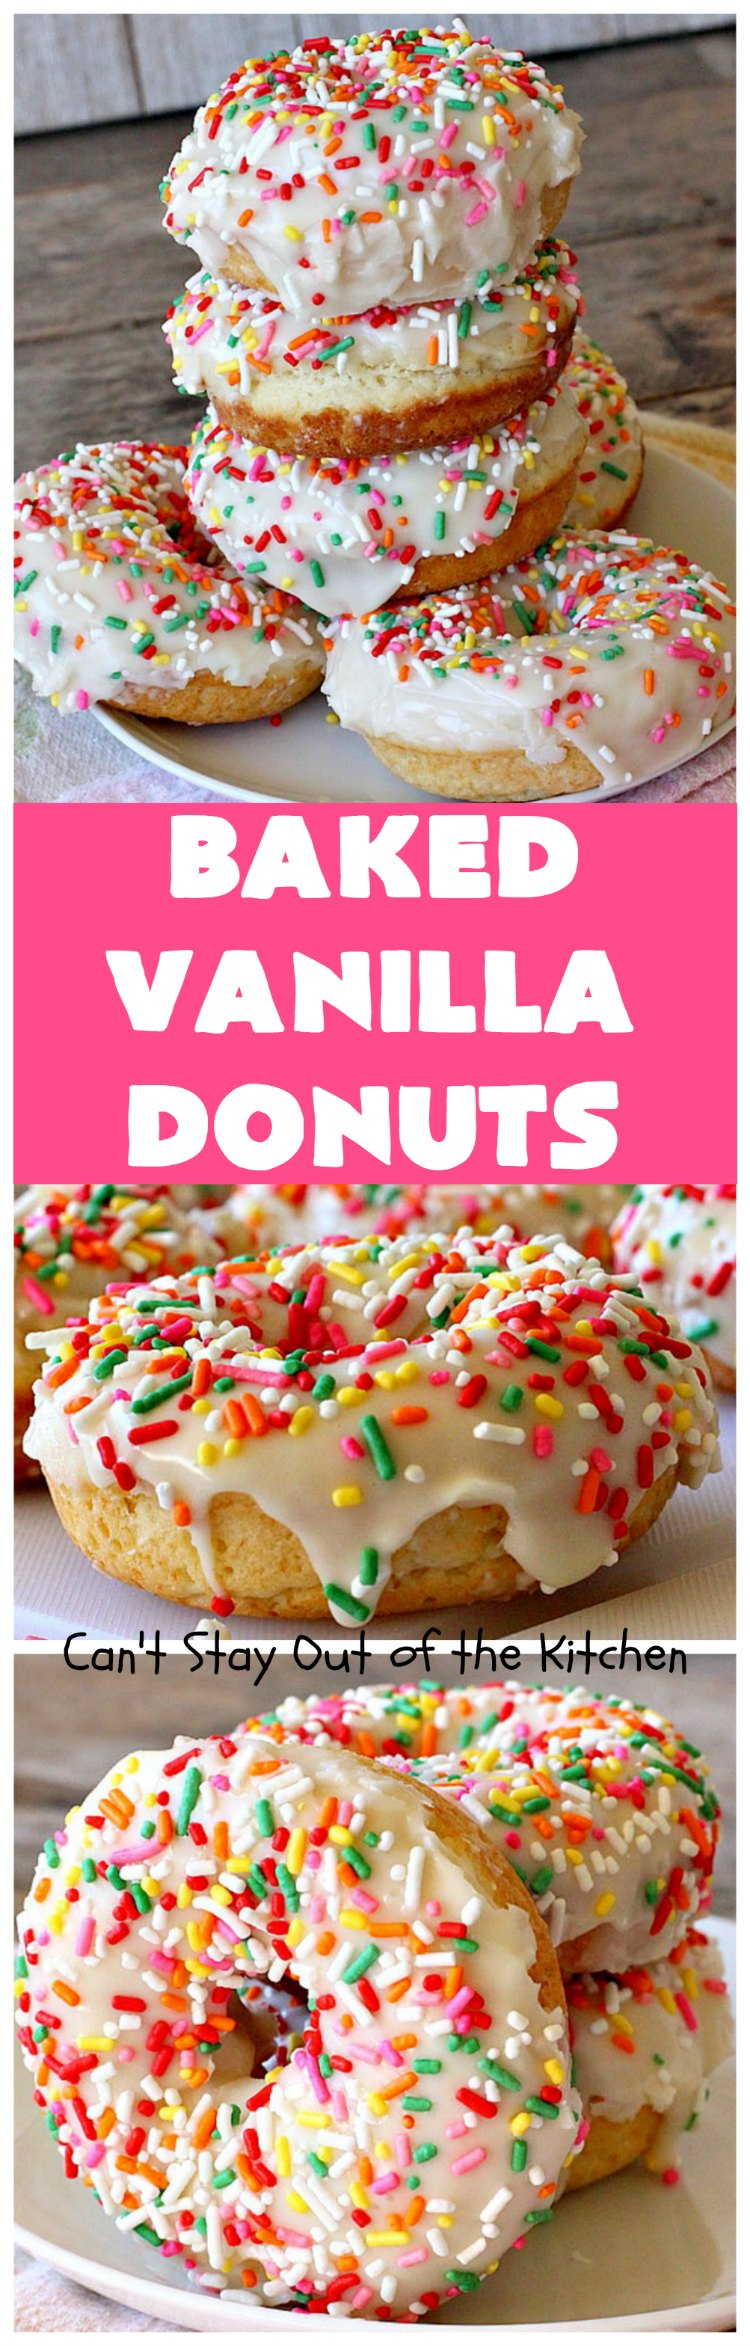 Baked Vanilla Donuts   Can't Stay Out of the Kitchen